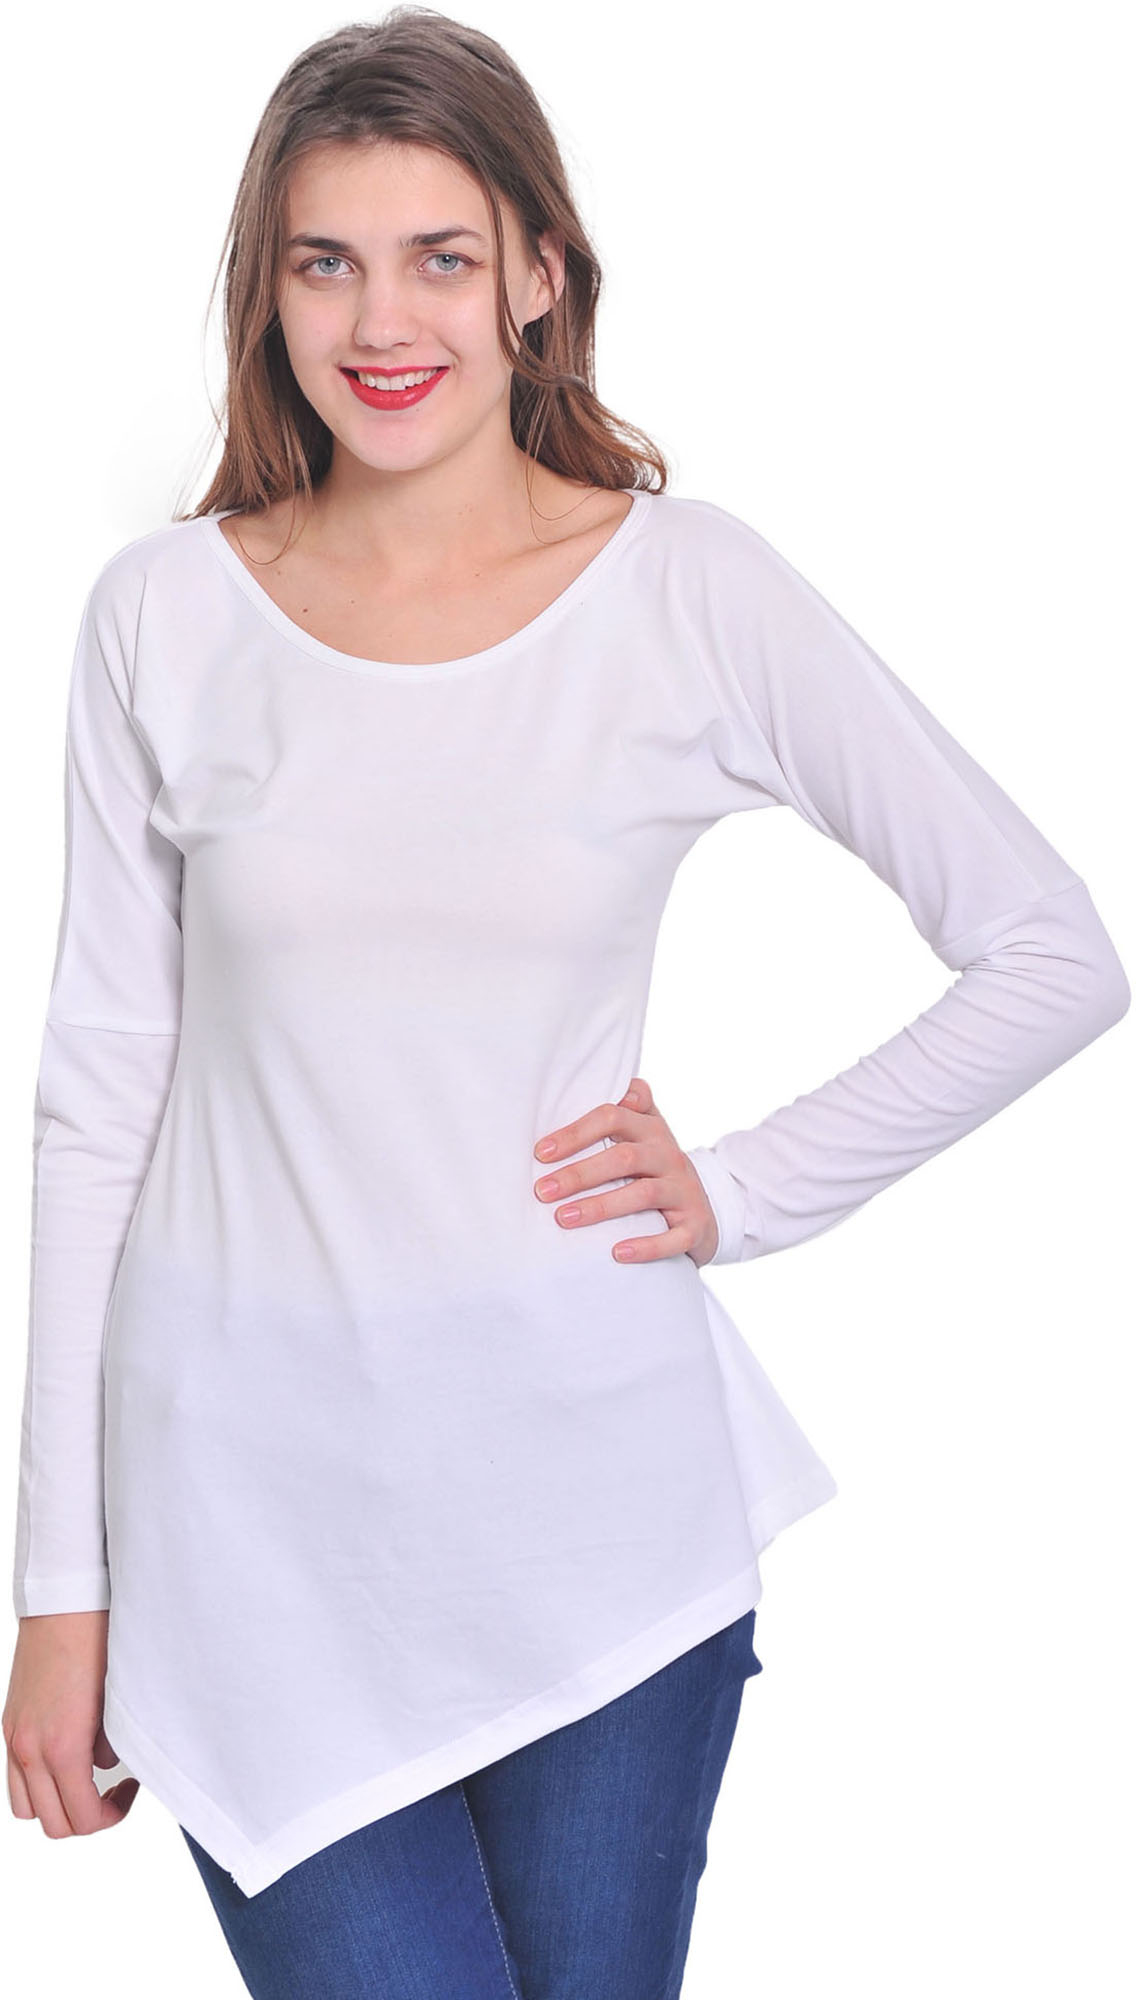 Choose comfort, style, and affordability with tunic shirts from Old Navy. Shop our fun and trendy selection for a wide range of sizes, styles, and fits. Choose a tank top, blouse, or tee shirt in the flowing, classic tunic style that is perfect for all-day wear and comfort.